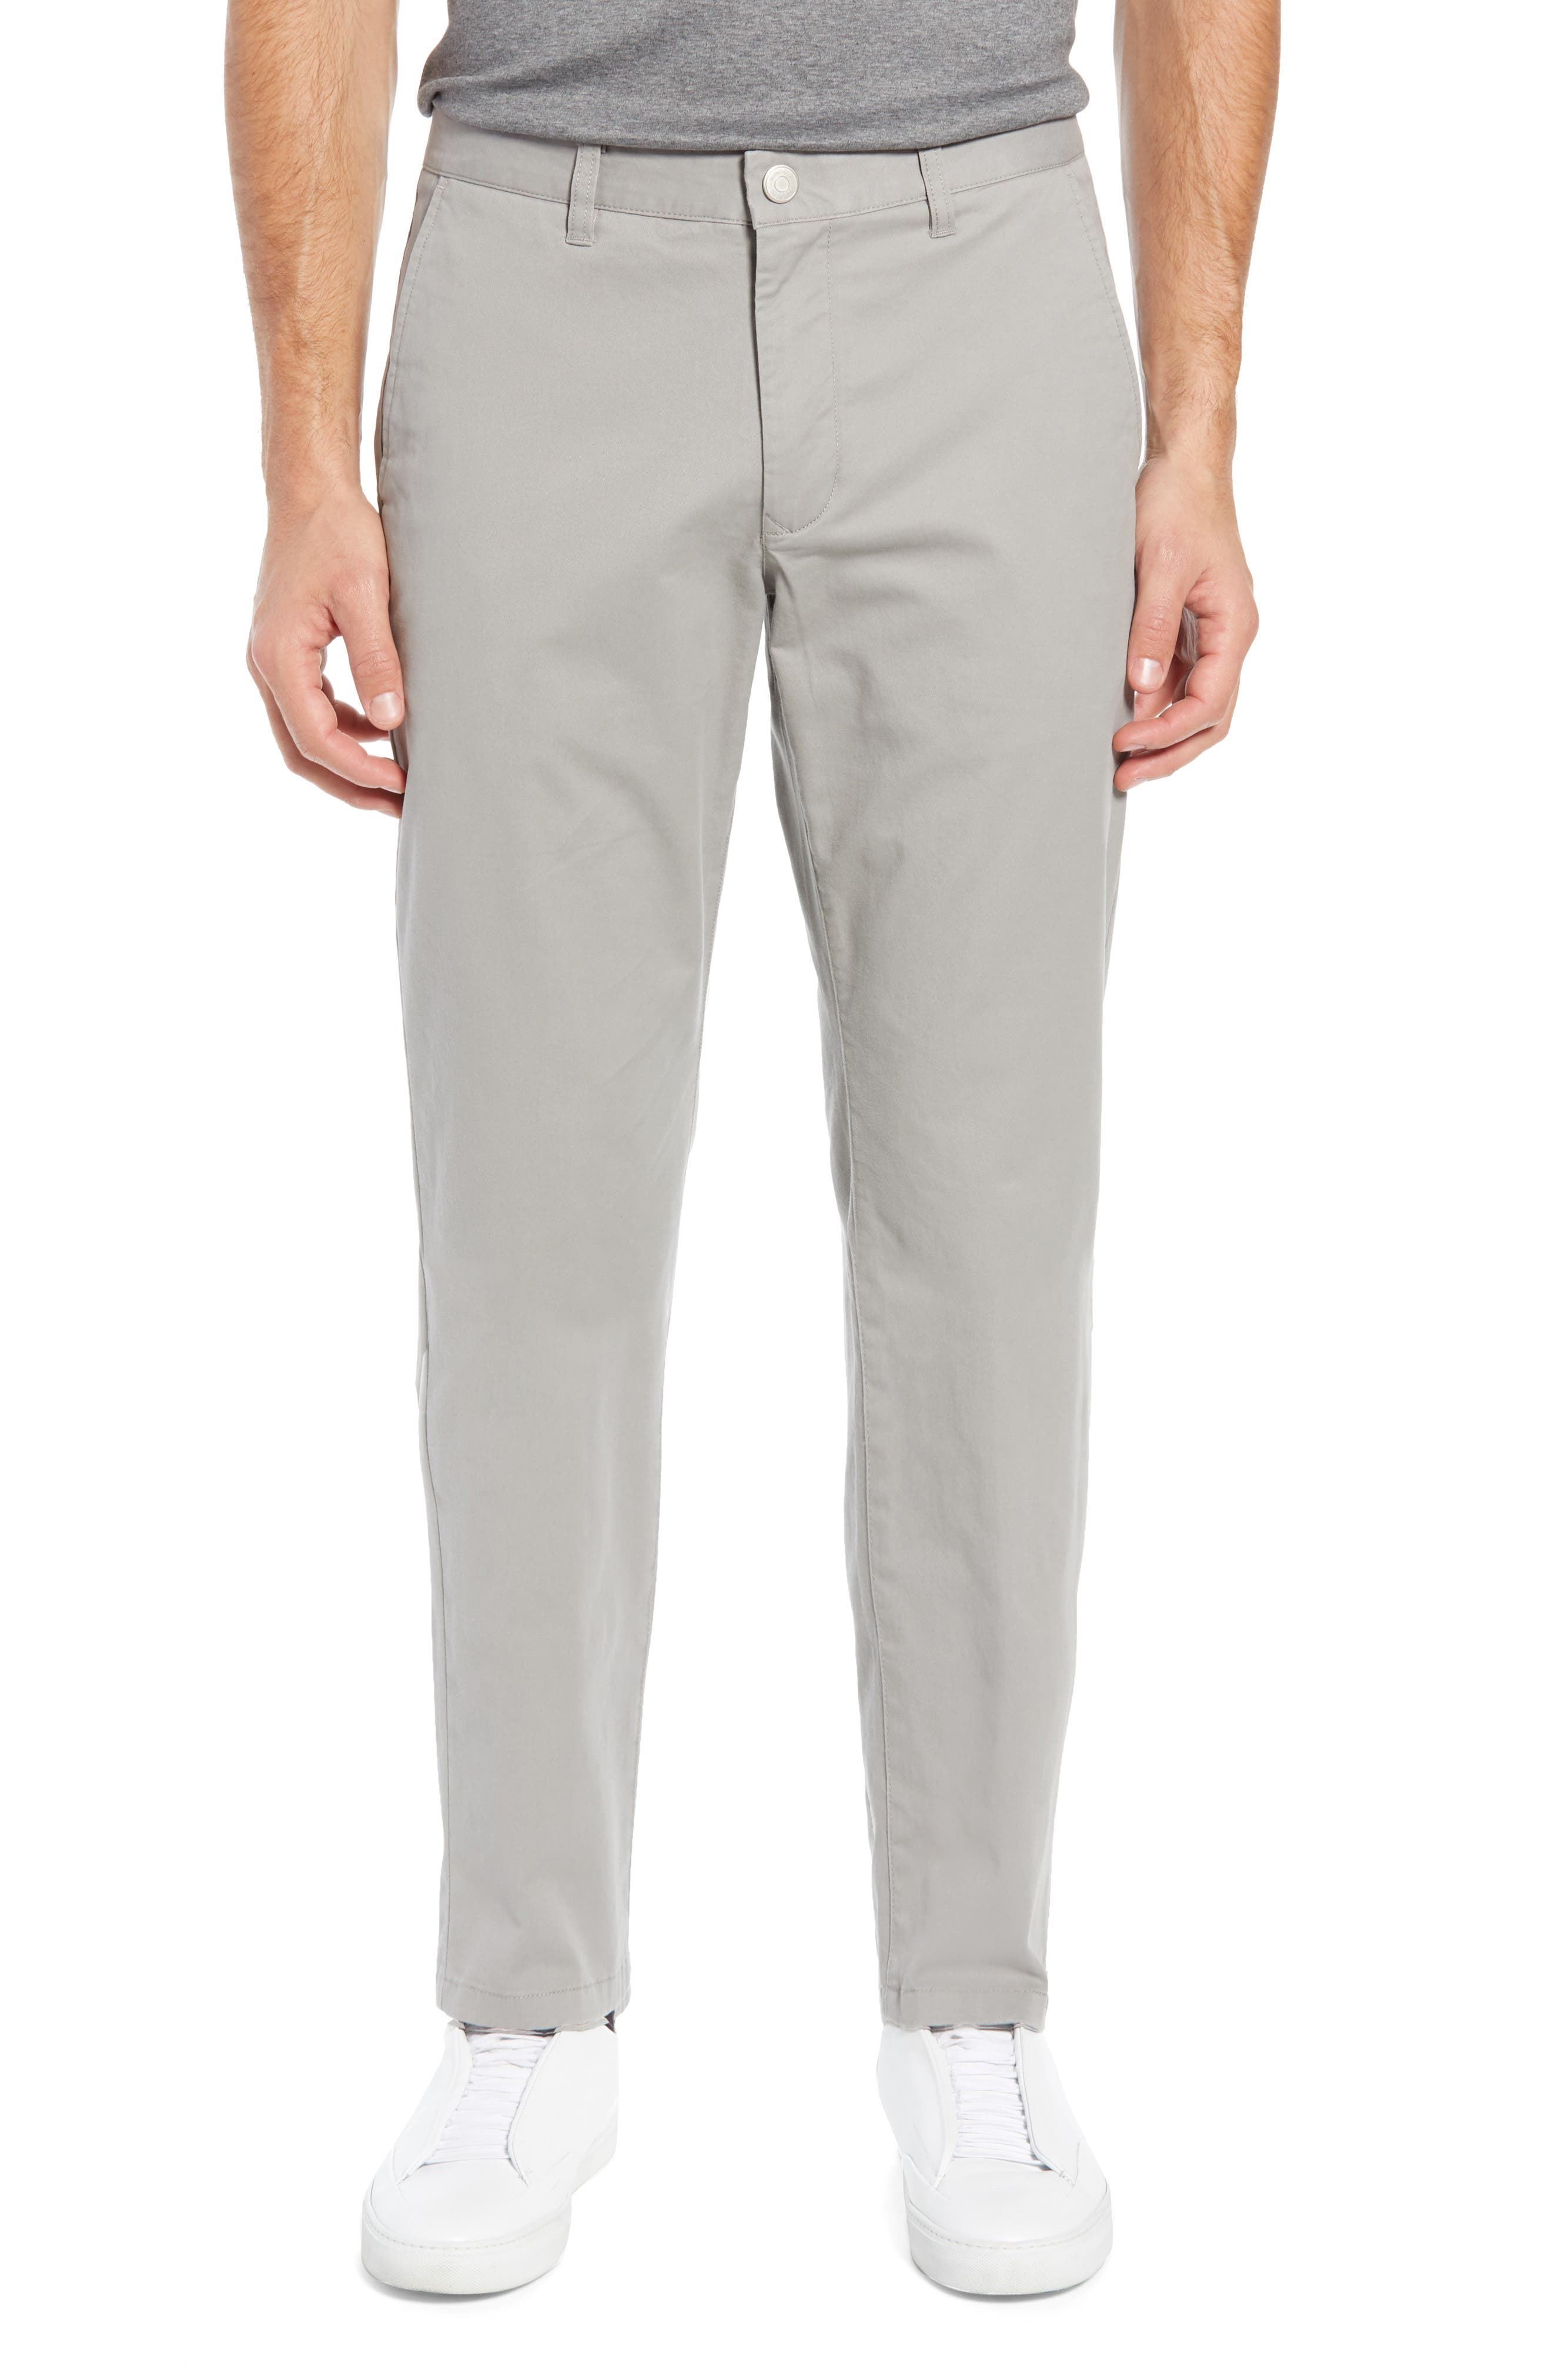 BONOBOS,                             Athletic Fit Stretch Washed Chinos,                             Main thumbnail 1, color,                             GREY DOGS